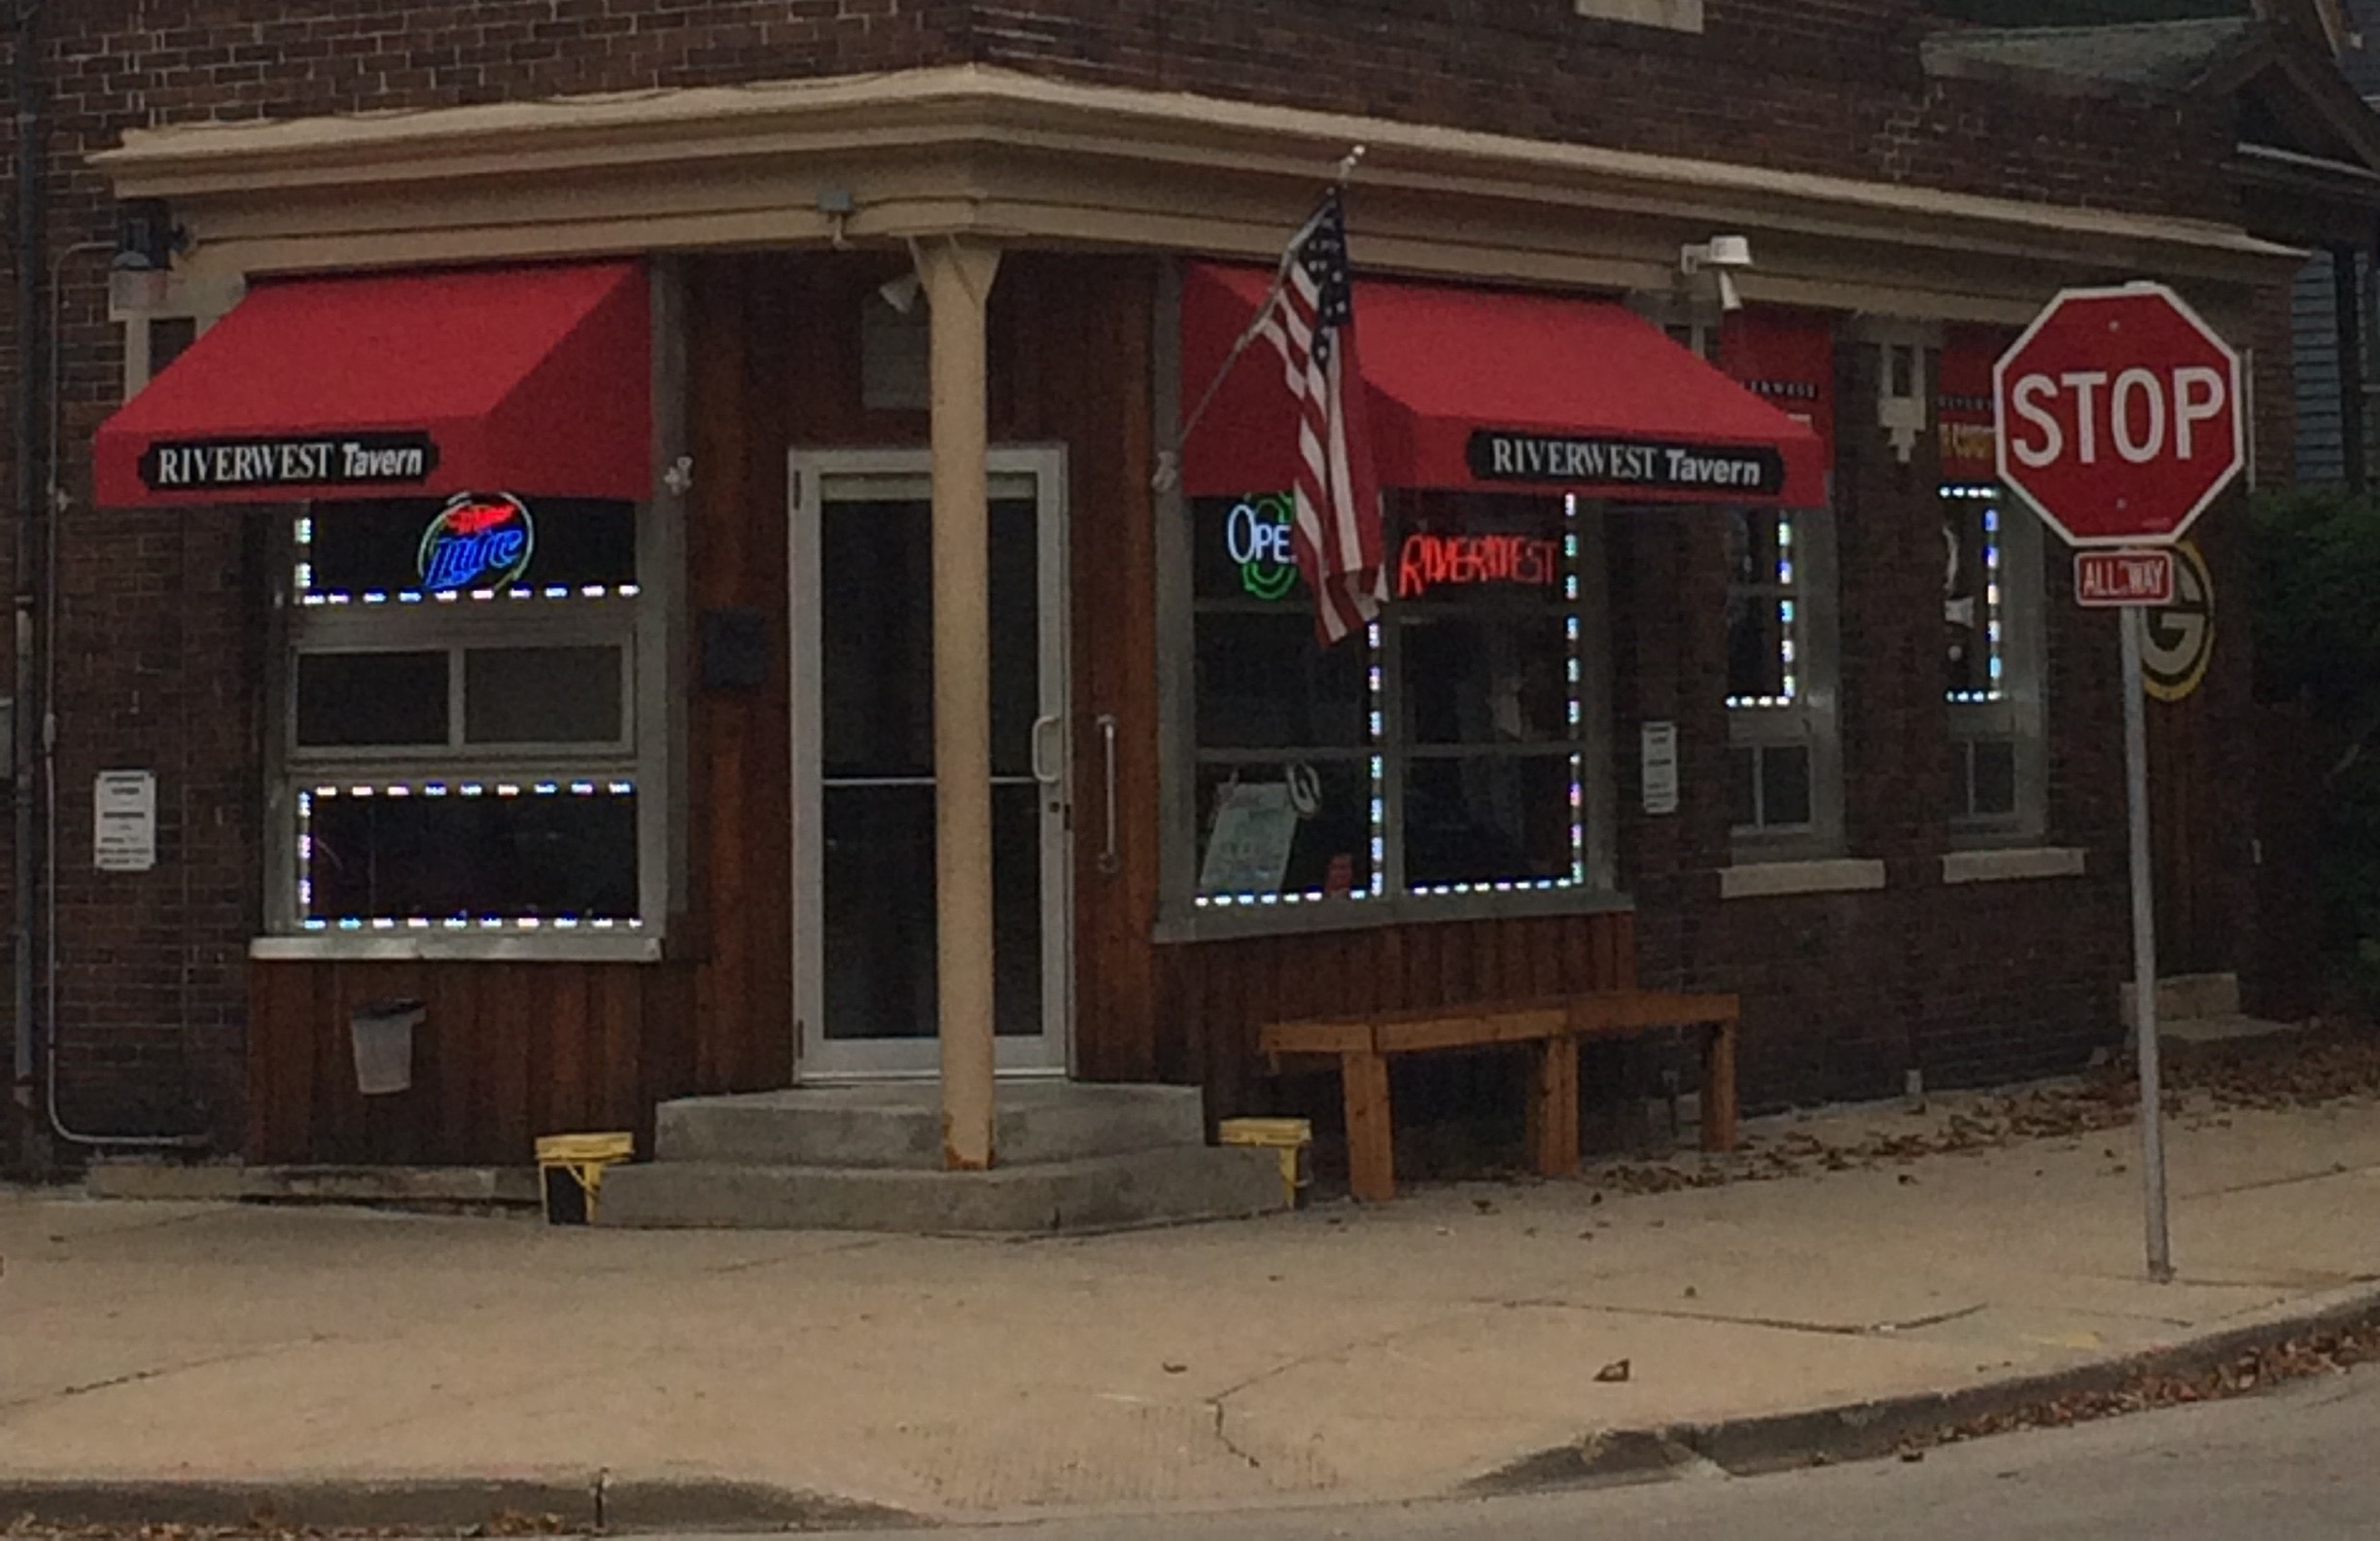 Picture of a bar with red awnings on the corner of an intersection.